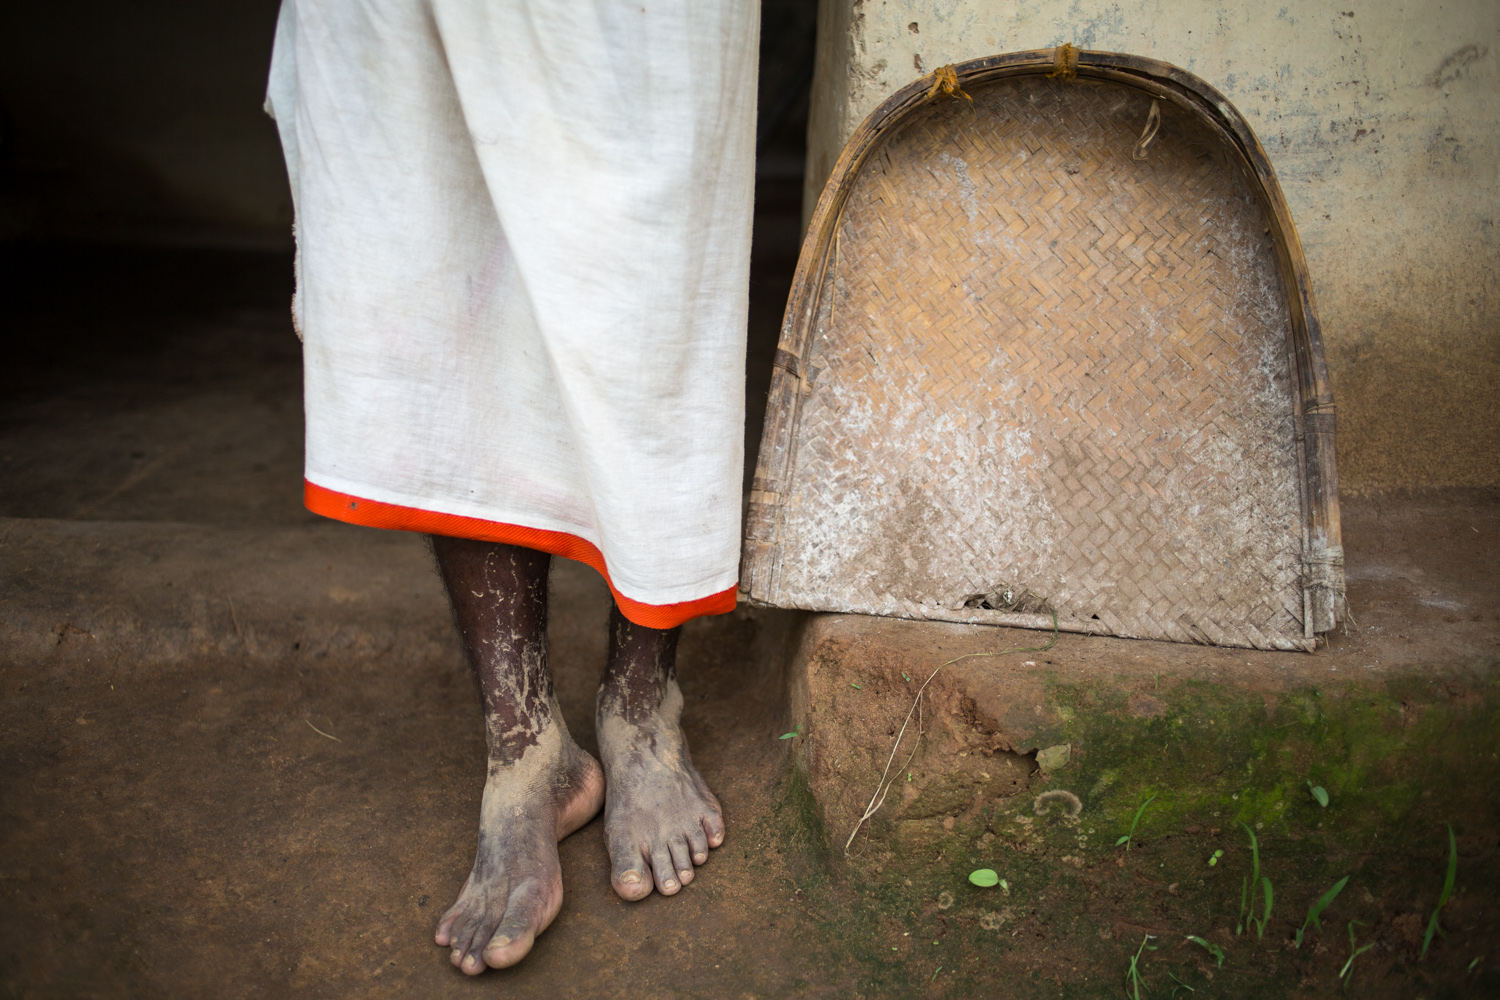 The well-oiled feet of a paddy farmer in Pedtali, a remote village in the forests of Mahan in Madhya Pradesh, INDIA.  The village might disappear if coal mining is allowed in the region to feed the many thermal power plants that have cropped.